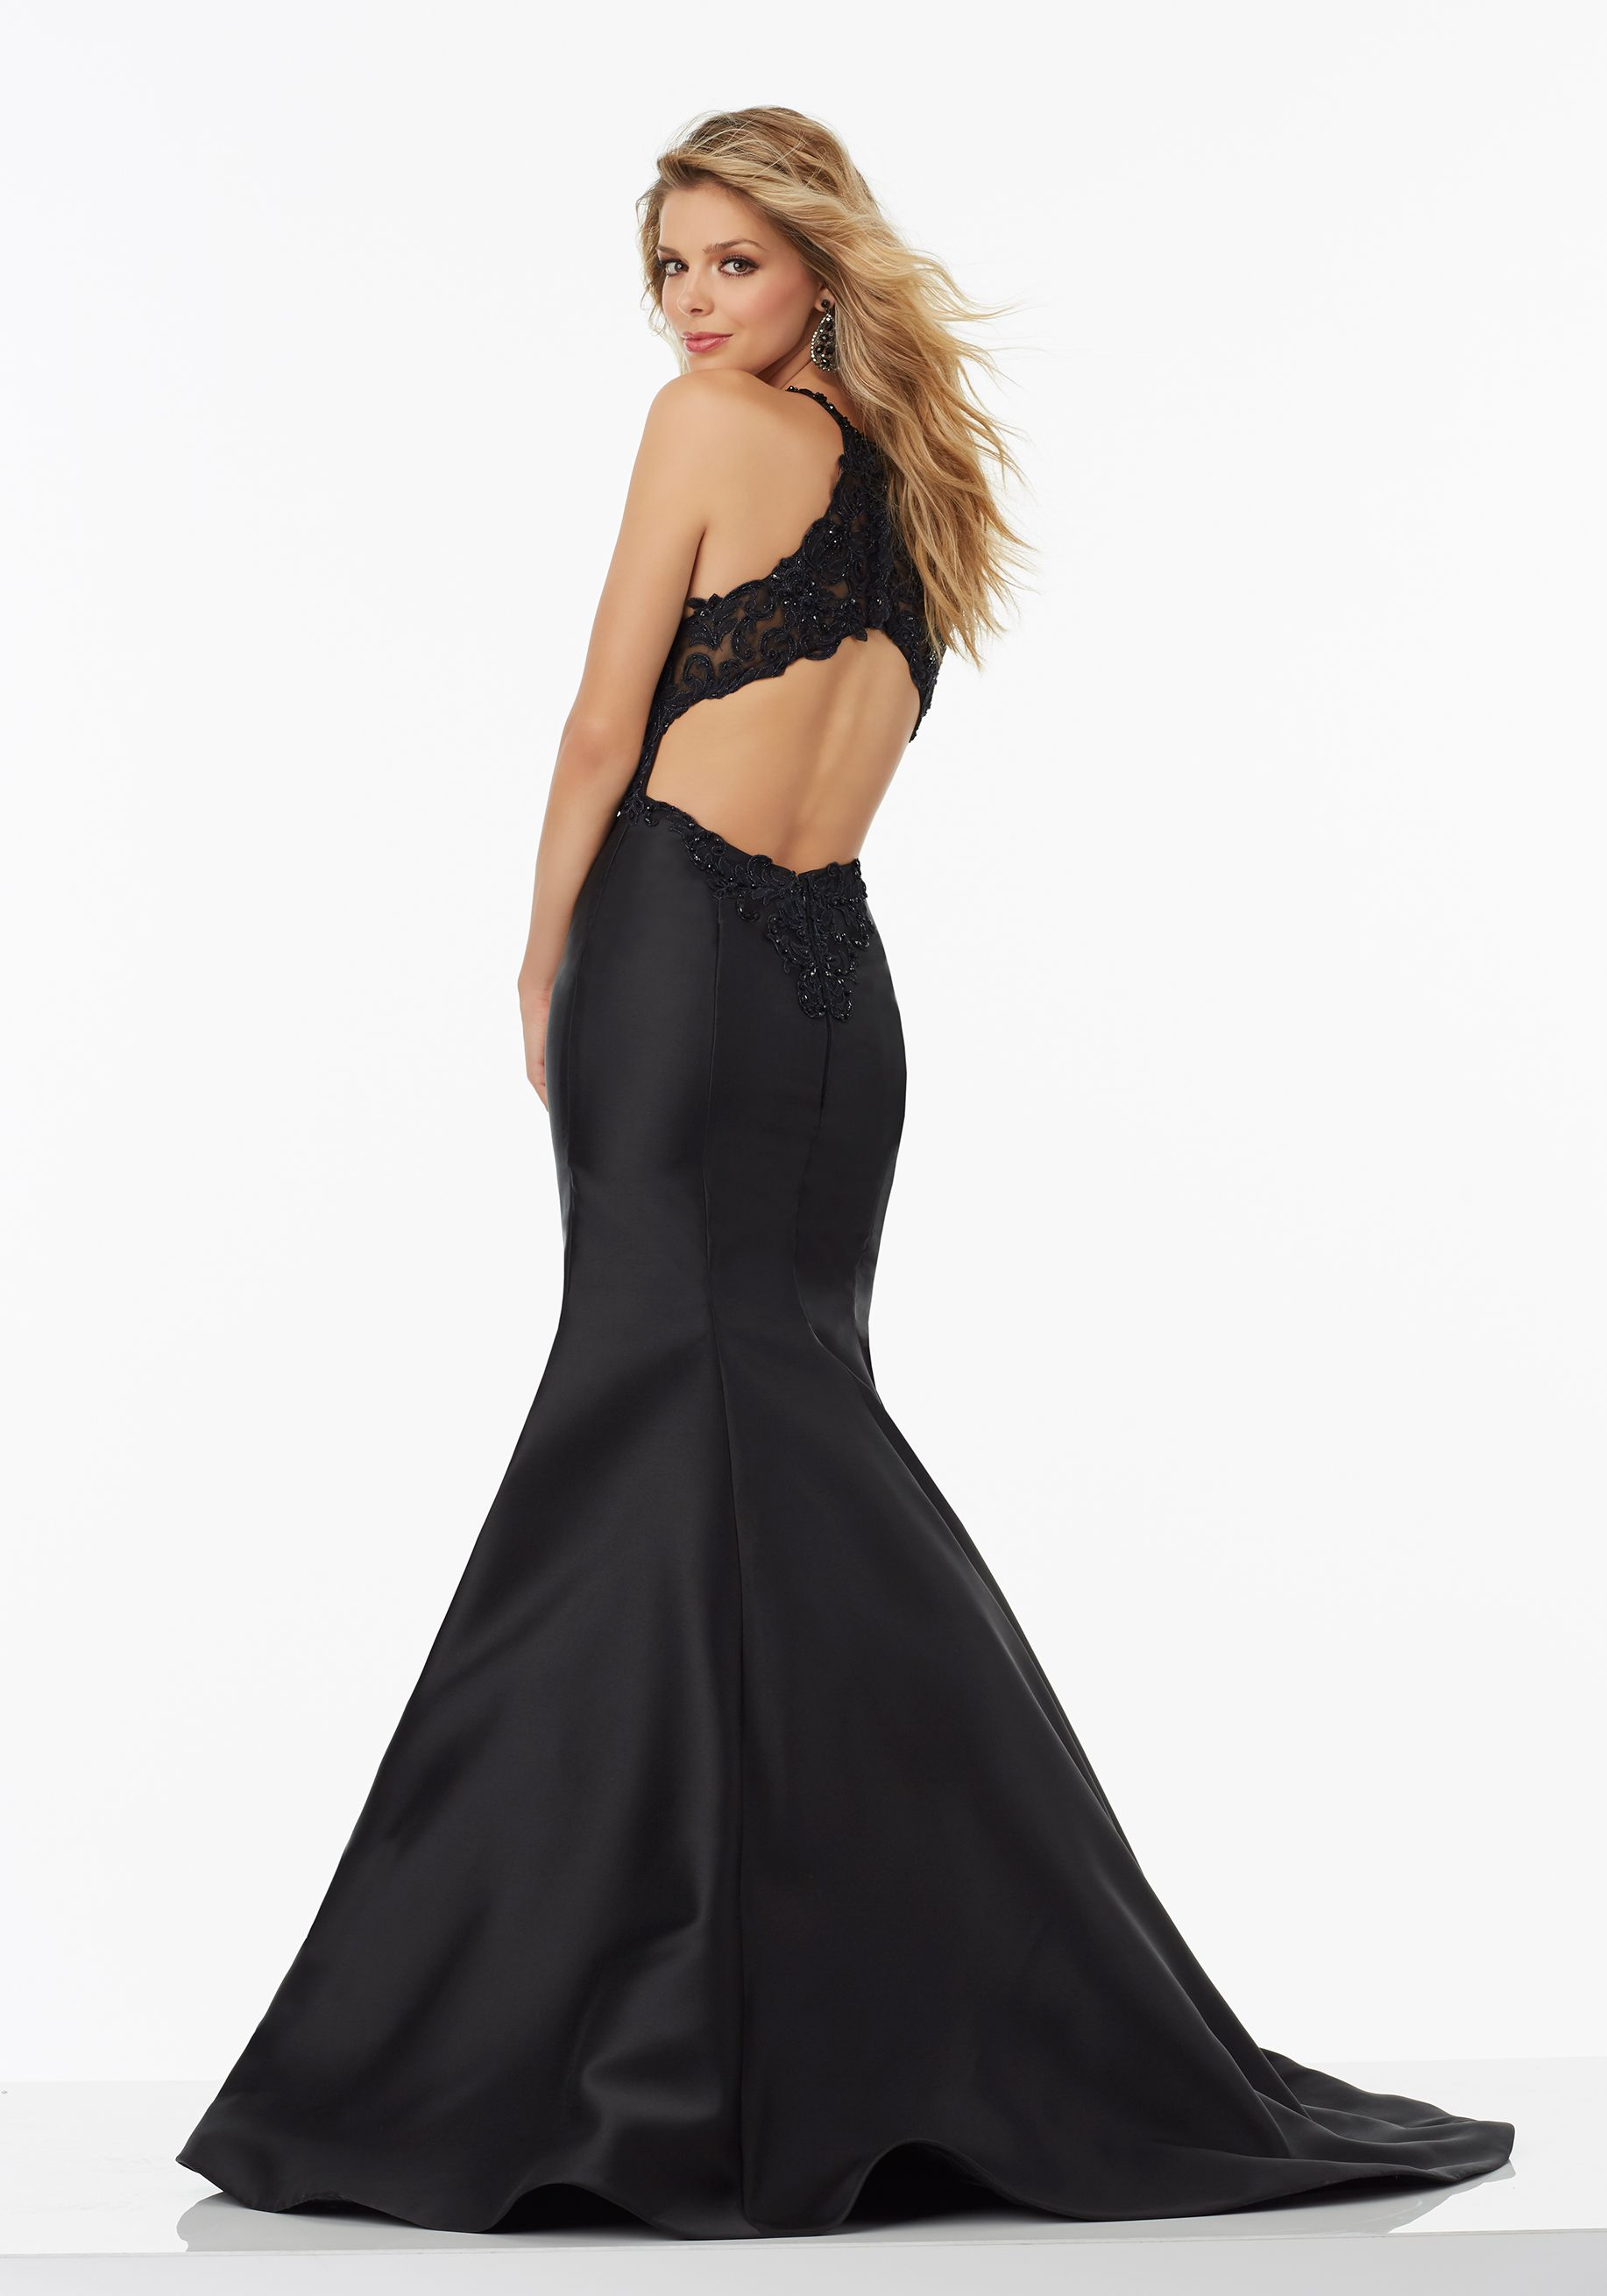 Larissa satin prom dress with beaded lace bodice and racer back